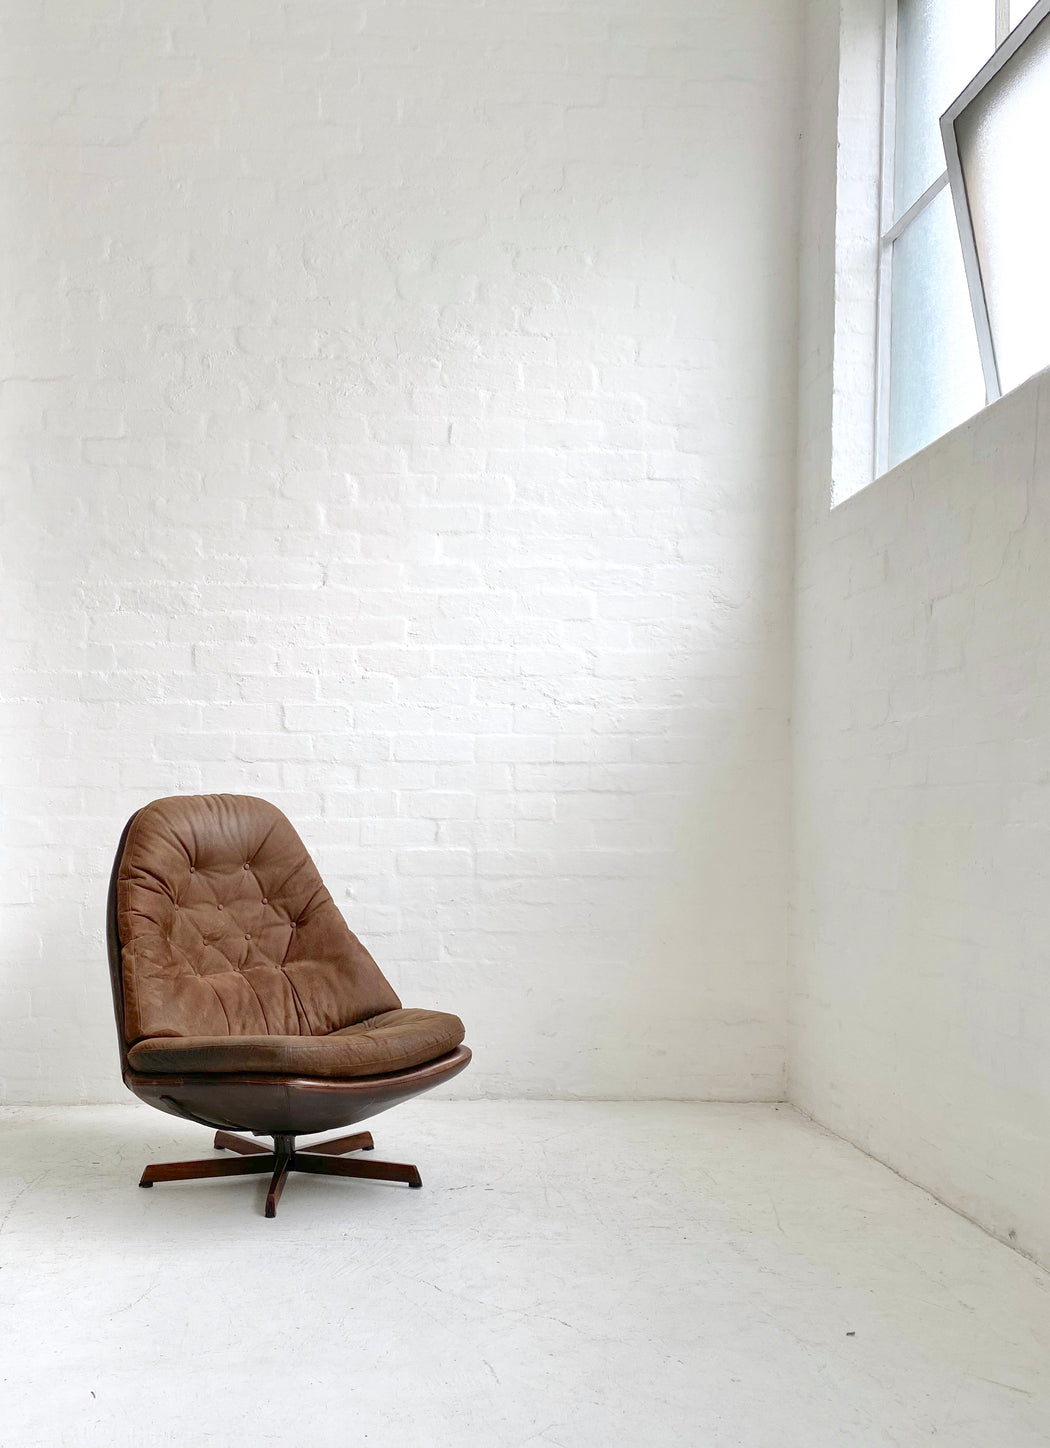 Madsen and Schübell 'Model MS68' Chair